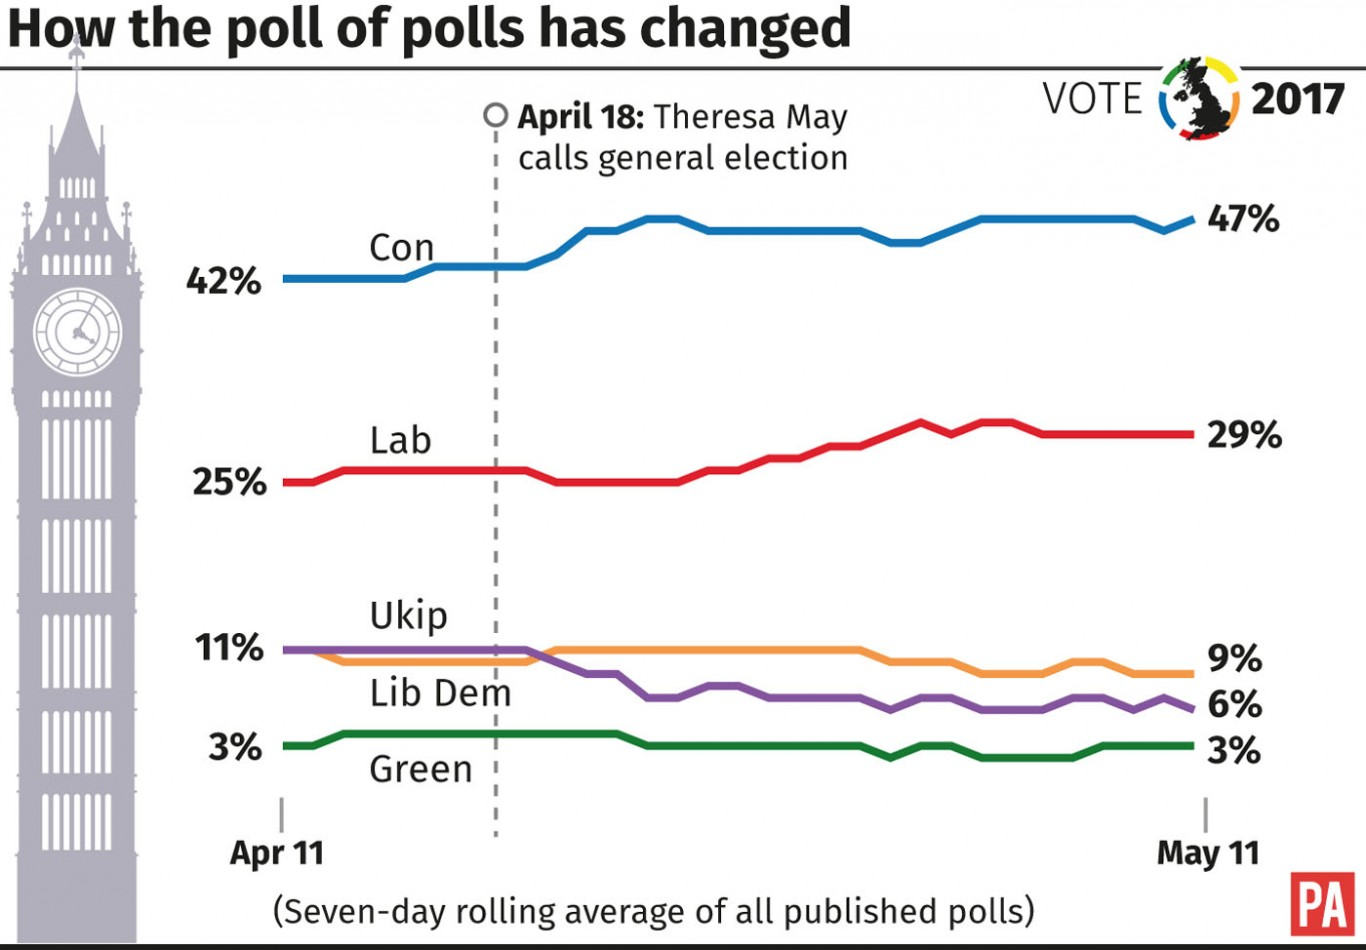 How the poll of polls has changed.